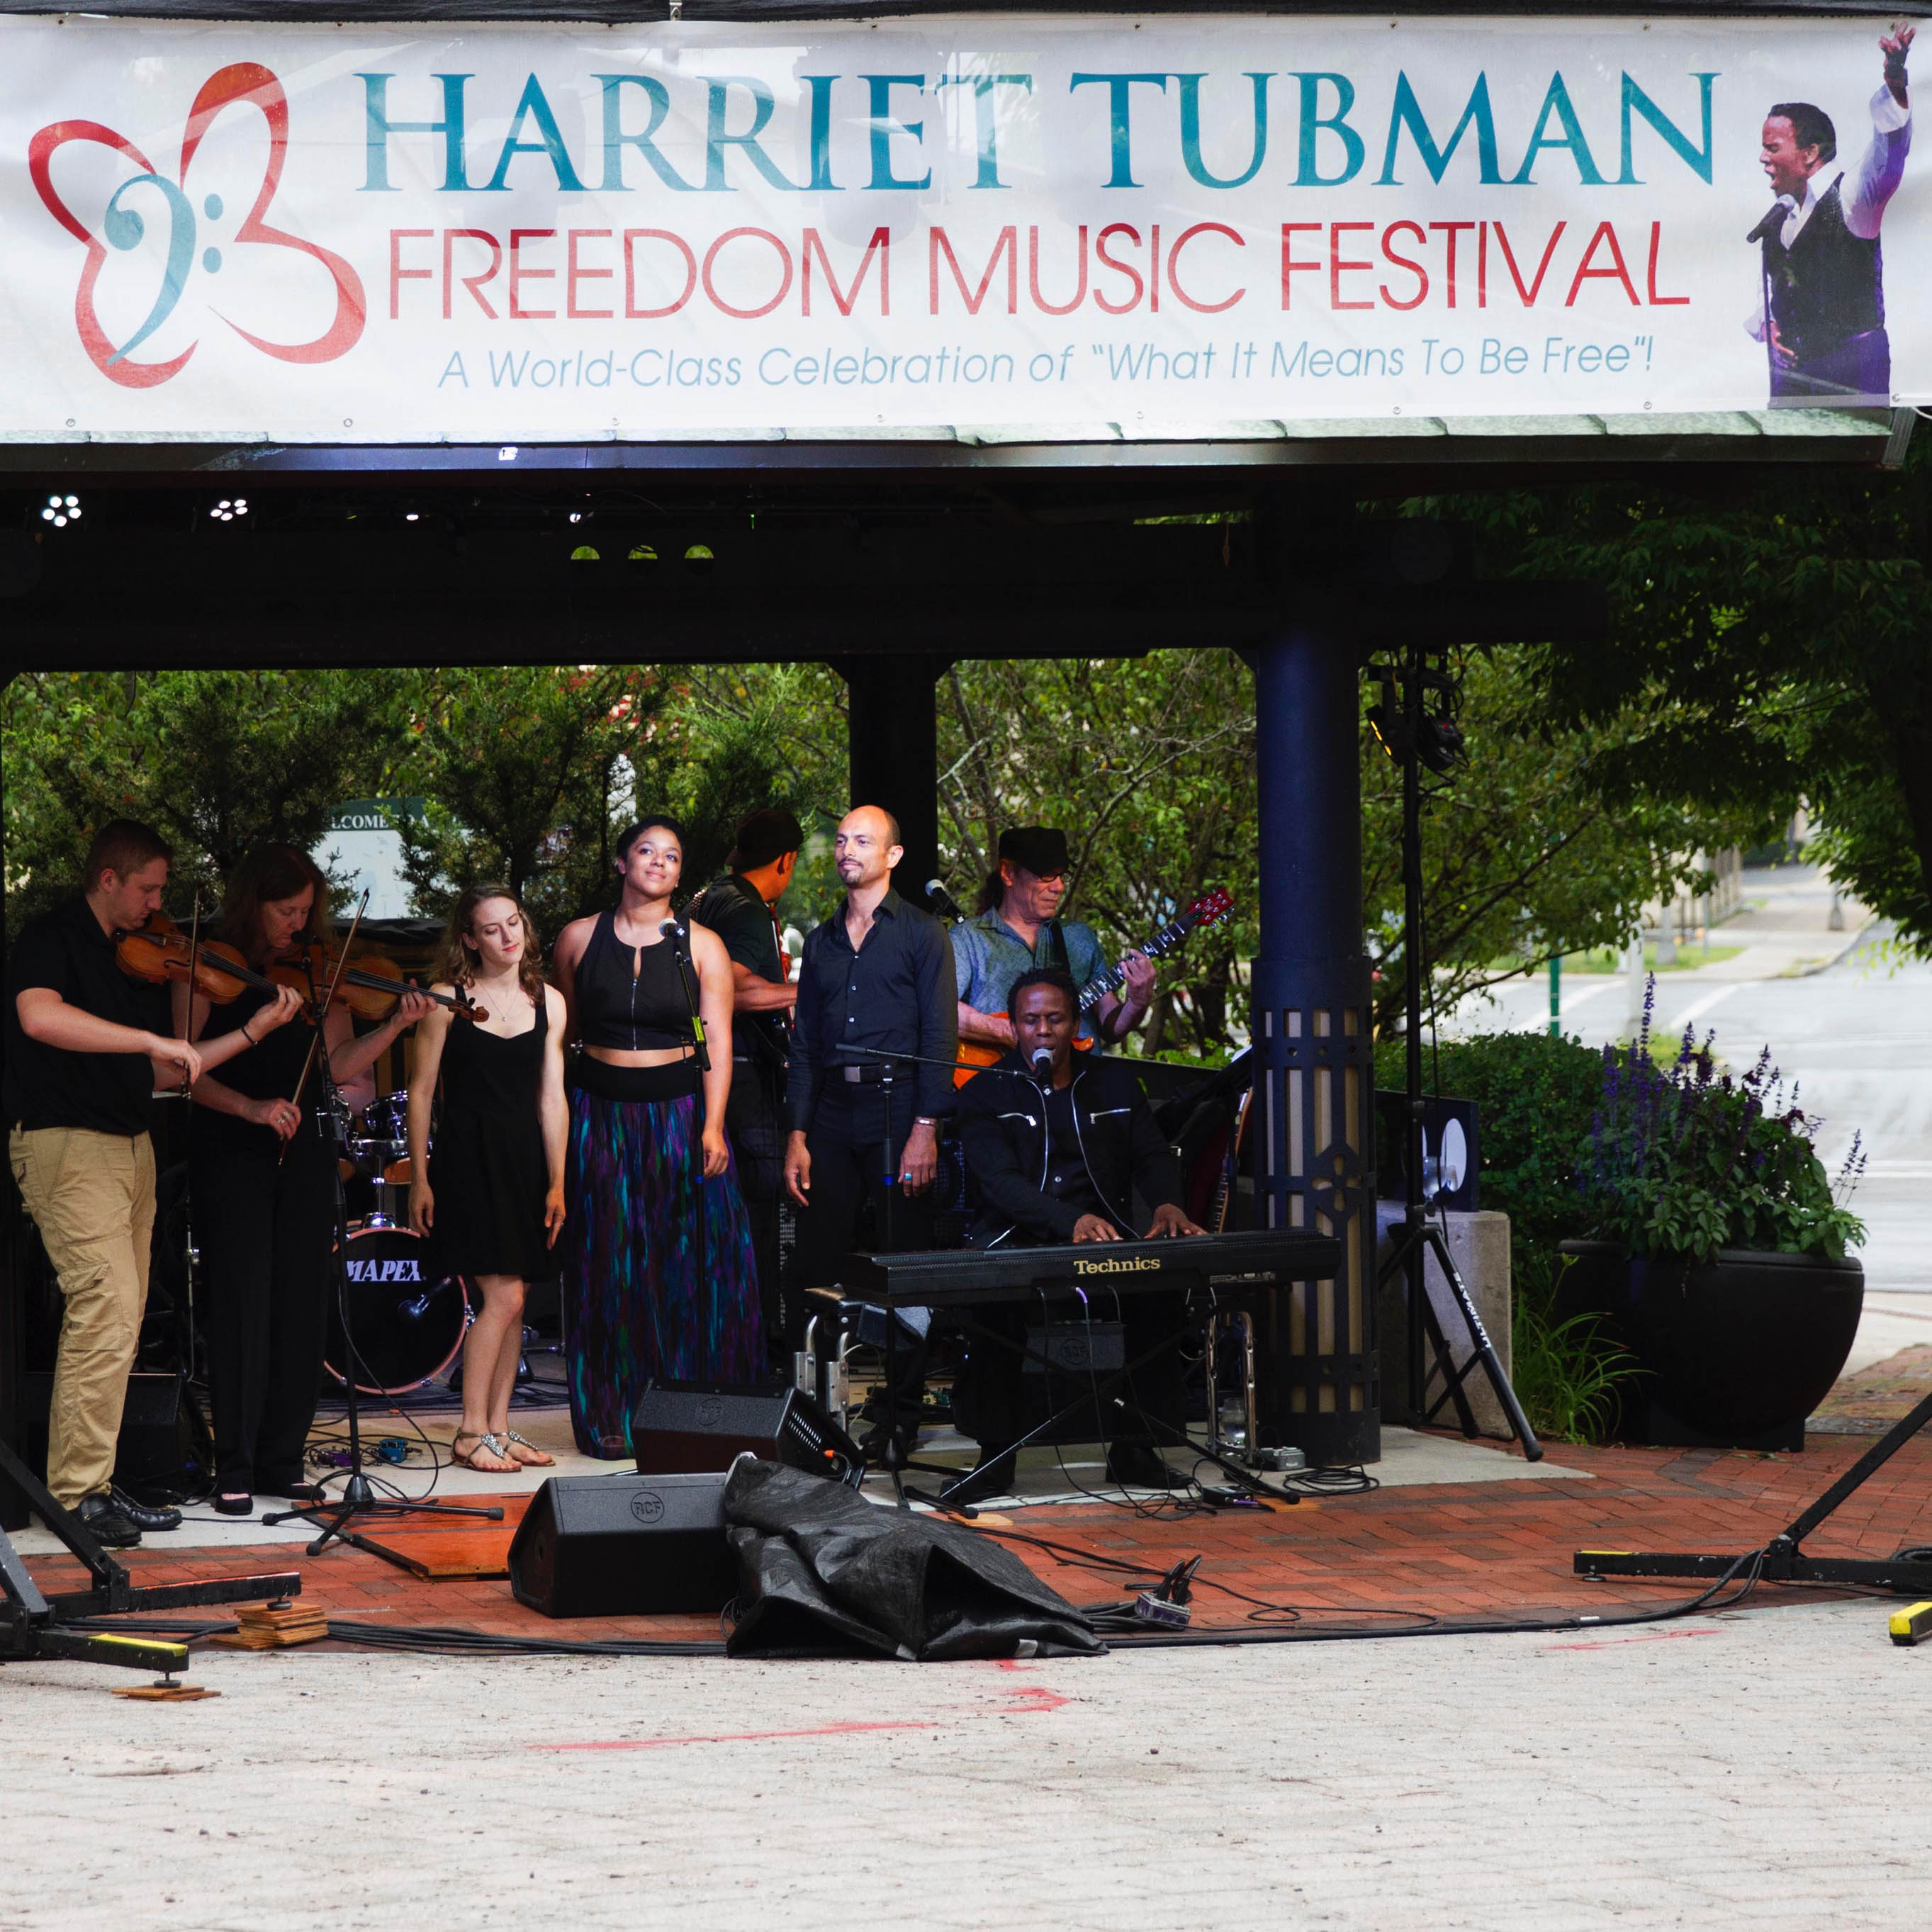 Harriet Tubman Freedom Music Festival - Kip Murray - website - event square